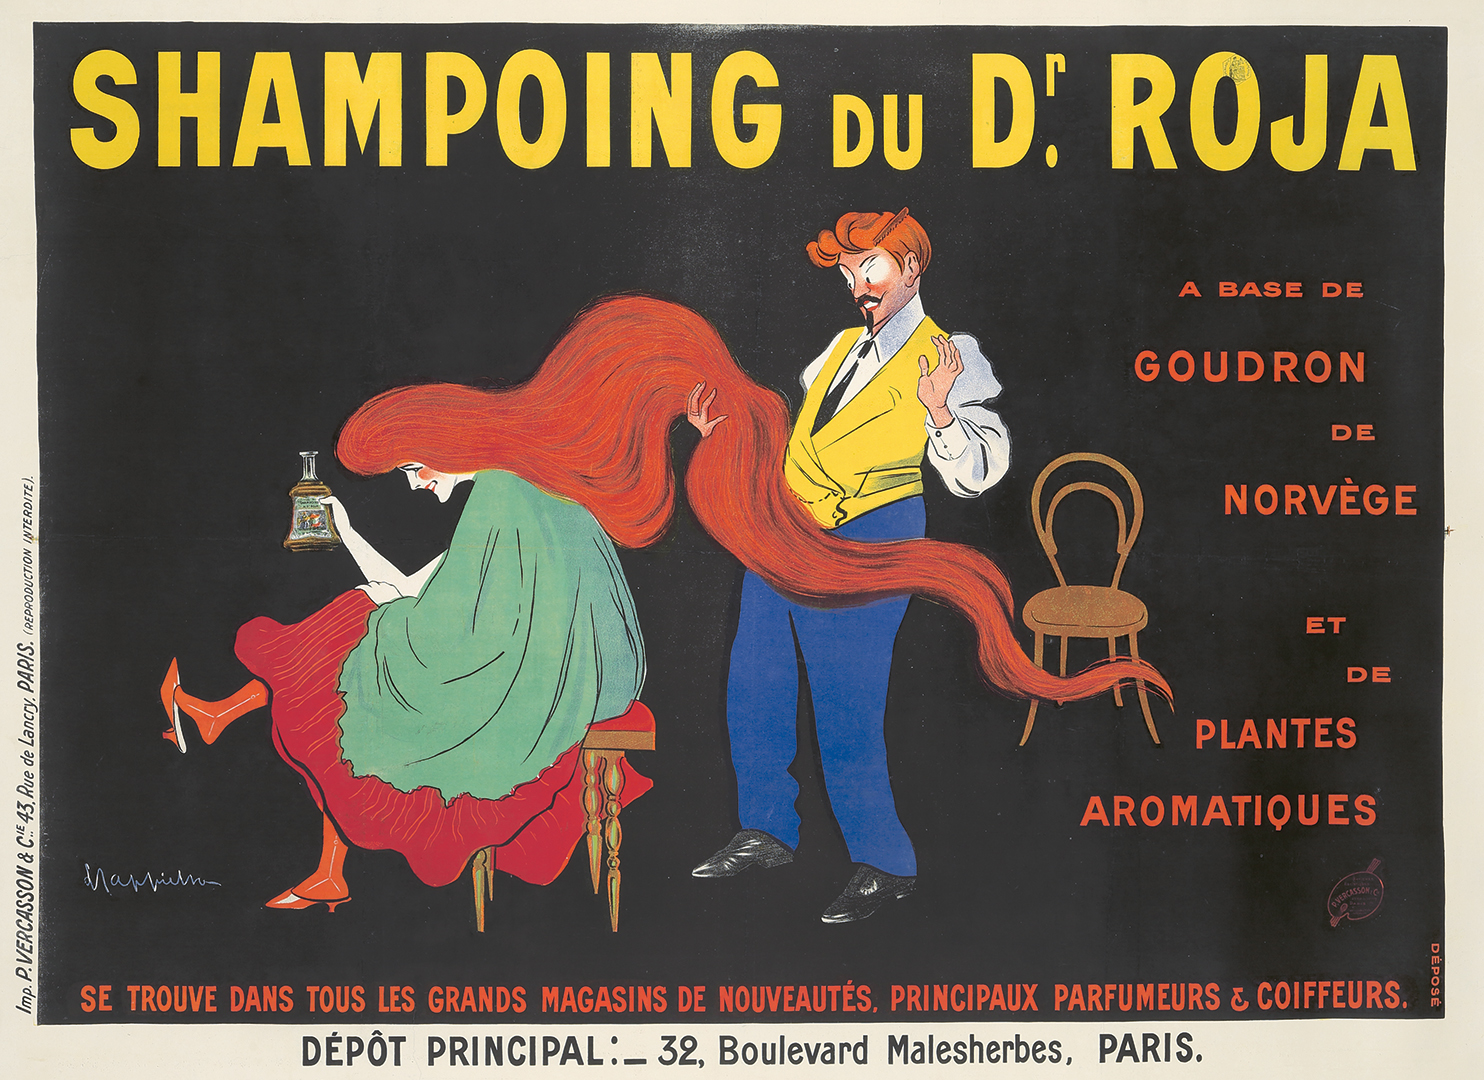 148. Shampoing du Dr. Roja. 1907.